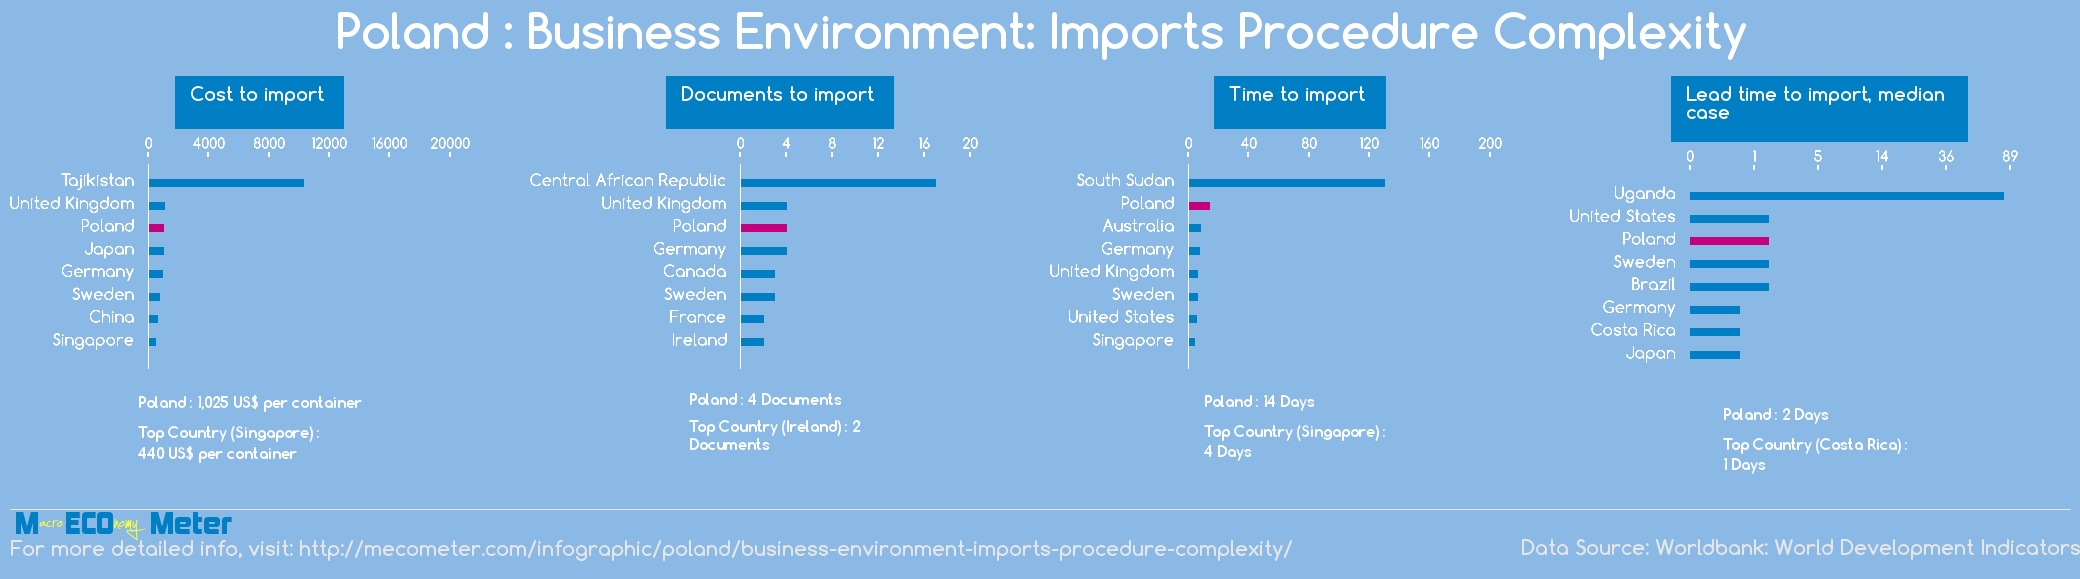 Poland : Business Environment: Imports Procedure Complexity